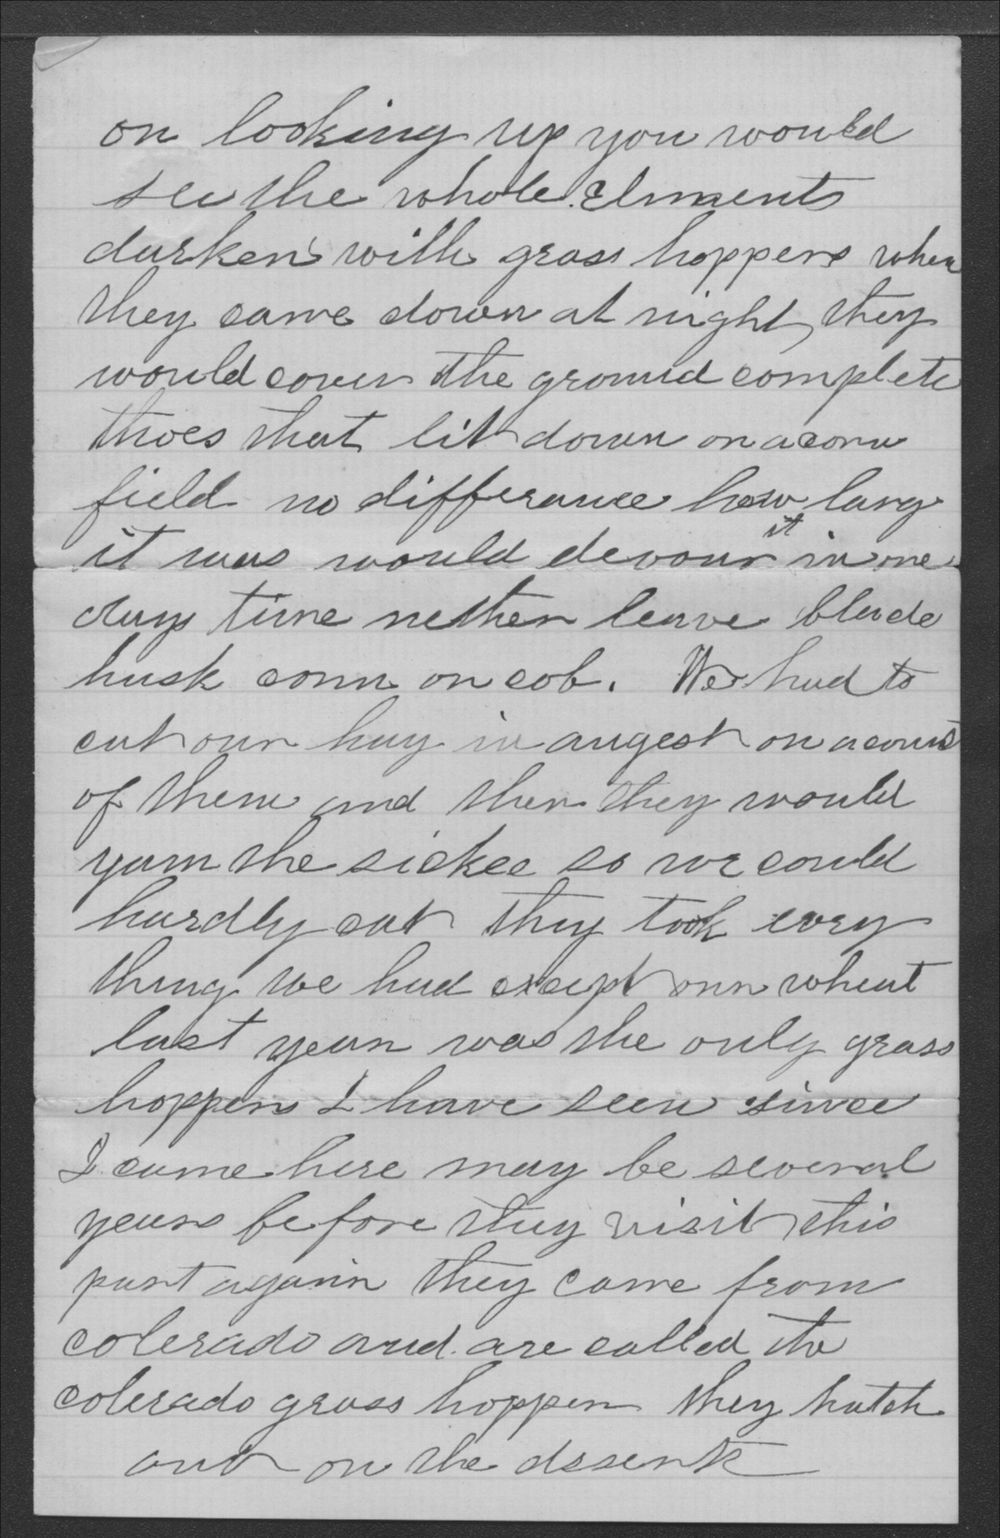 A. W. Johnson and Isabella Johnson to Robert S. Wickizer - 3